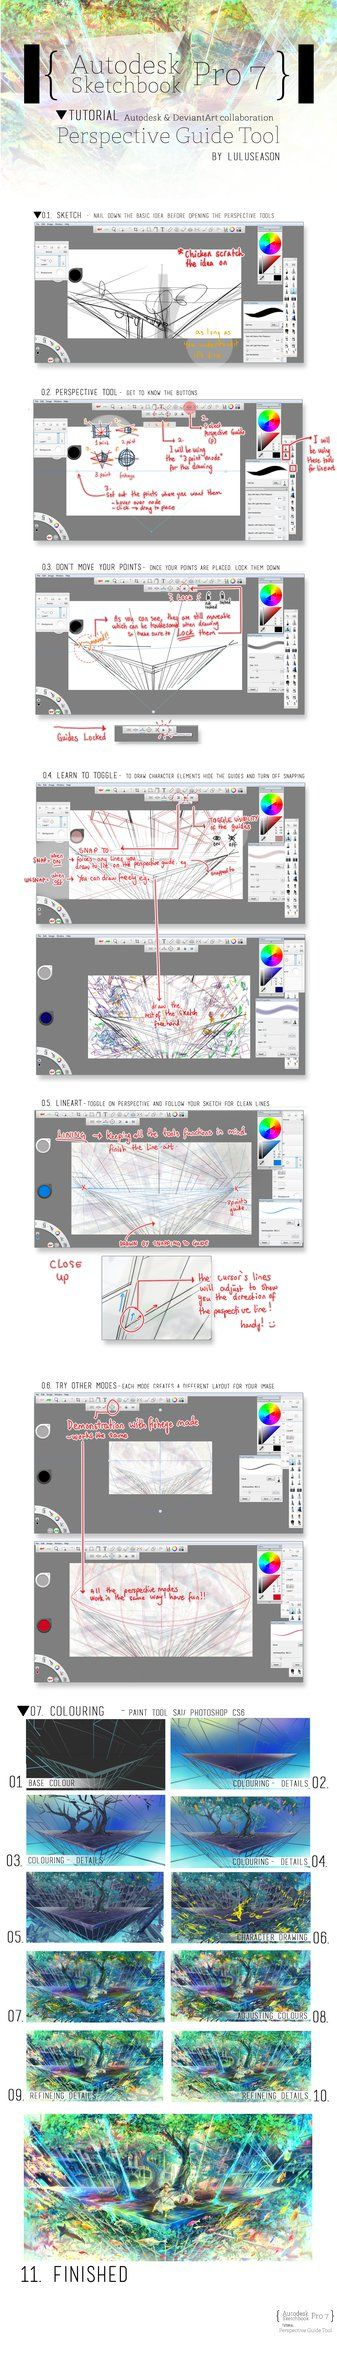 How to create grid in sketchbook pro - This Is The Tutorial To Explain The Basics On How To Use The Perspective Guide Tool On Autodesk Sketchbook Pro It S S